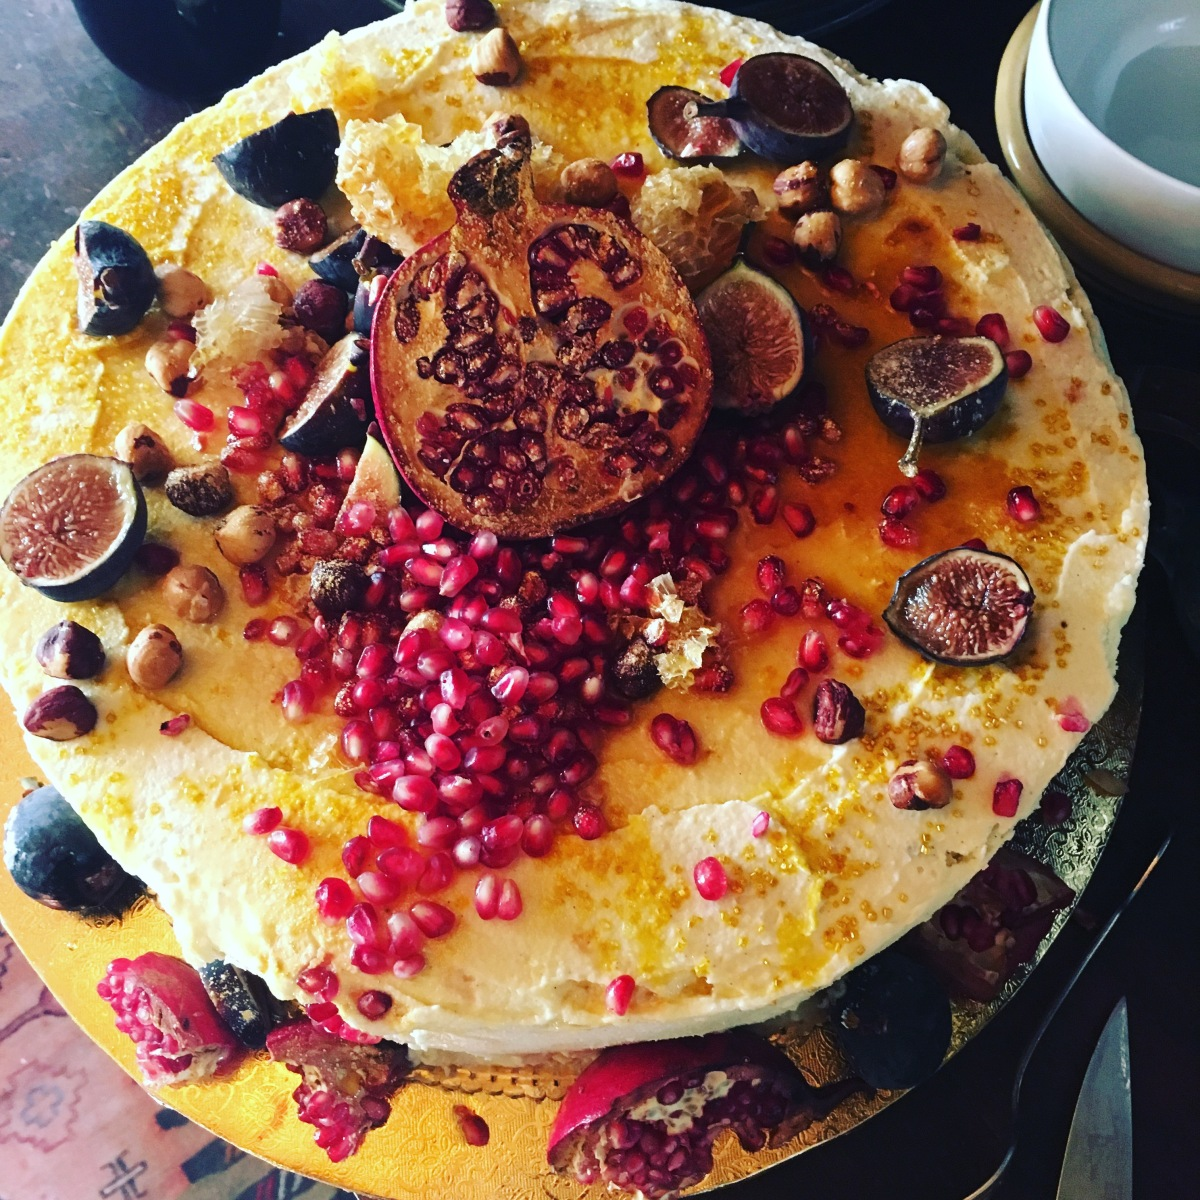 A Luscious Autumn Fertility Cake for Sxip and Coco's Wedding- Hazelnut Brown Butter Financier with Pomegranate Curd, White Chocolate Icing, Fresh Figs, Pomegranates and Honeycomb (Gluten-Free)